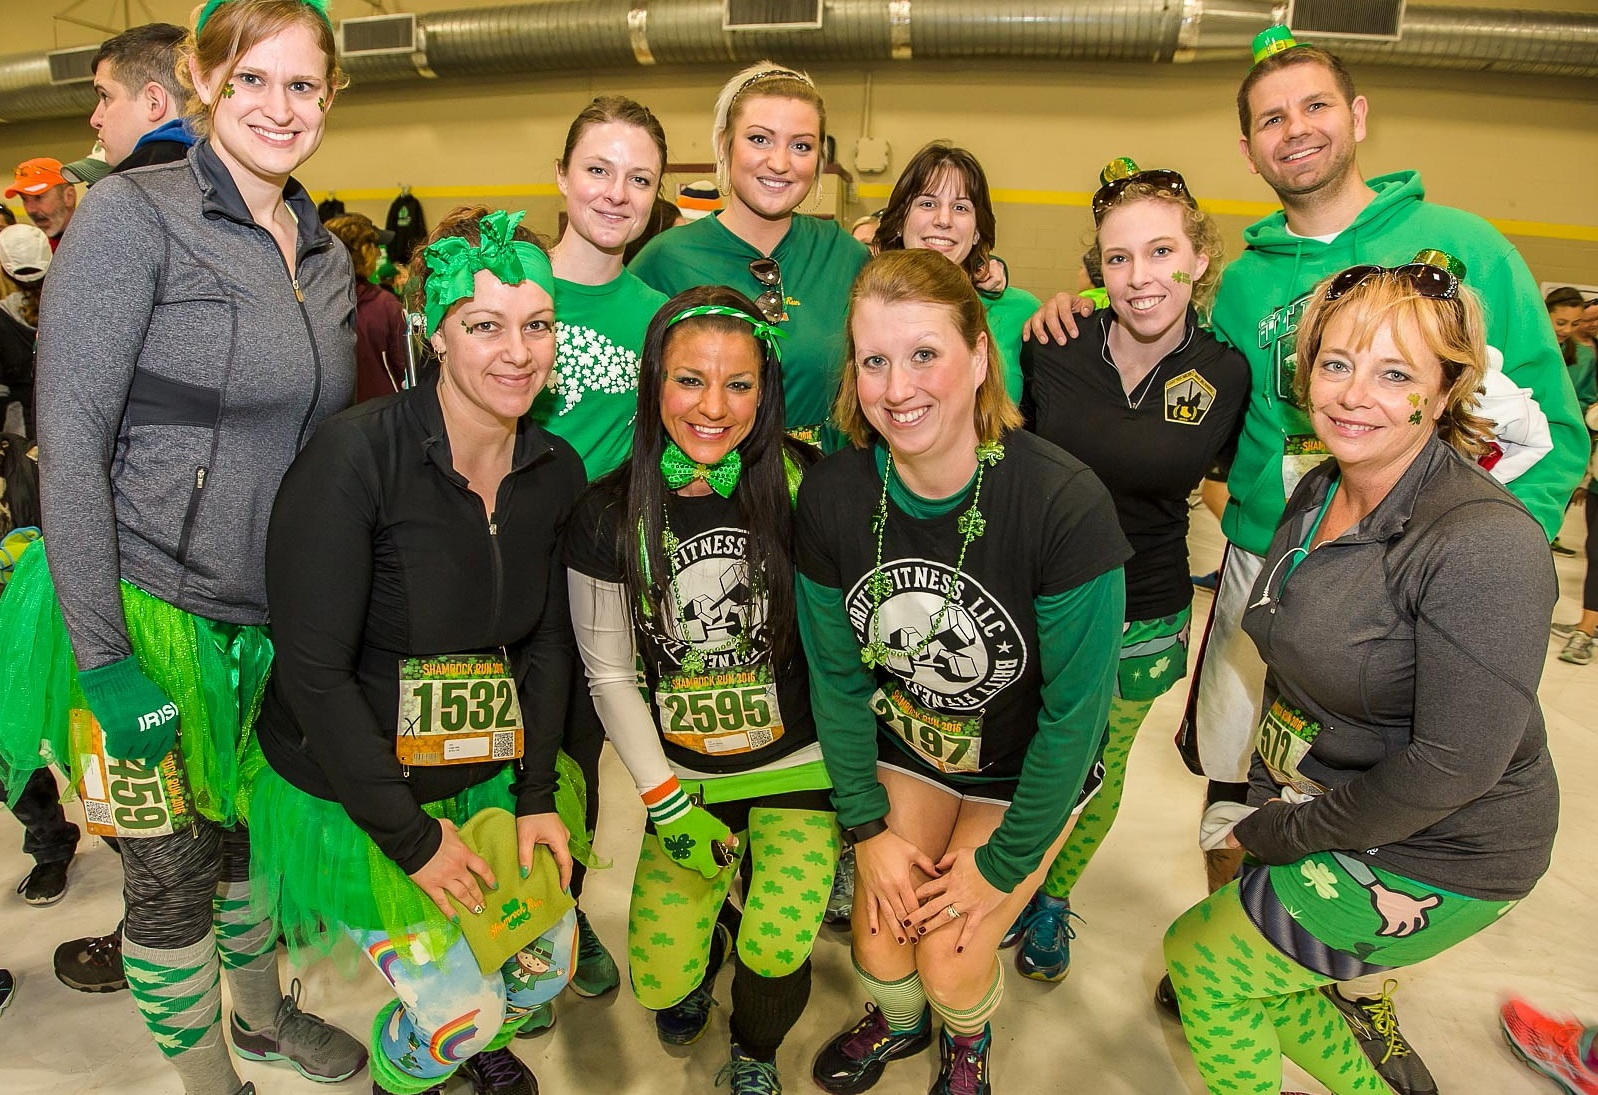 Smiles at the 2016 Shamrock Run after party. (Don Nieman/Special to The News)